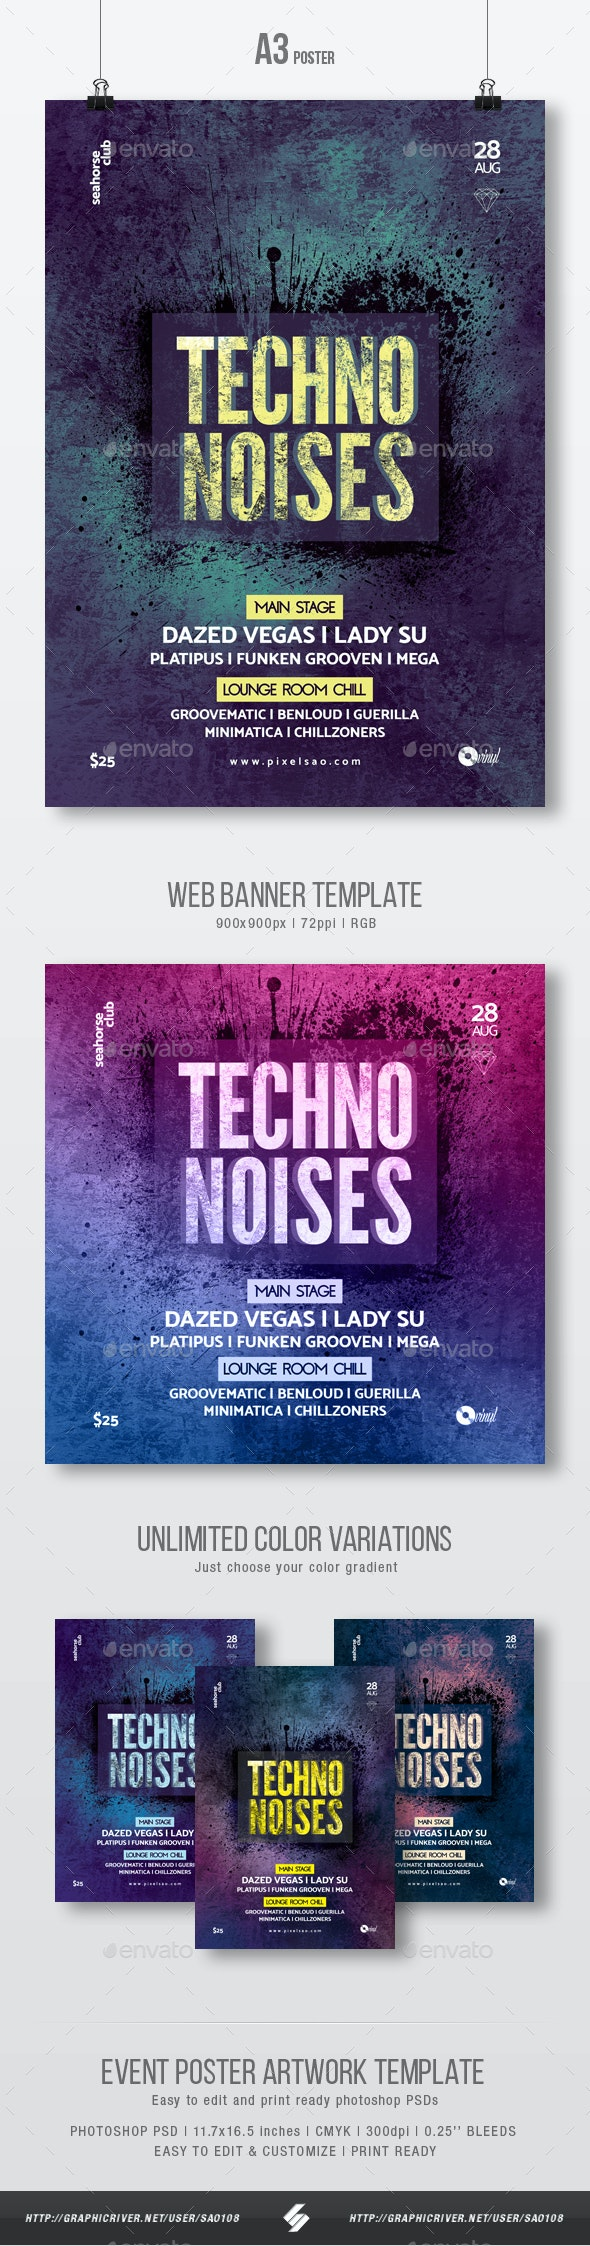 Techno Noises - Party Flyer / Poster Template A3 - Clubs & Parties Events